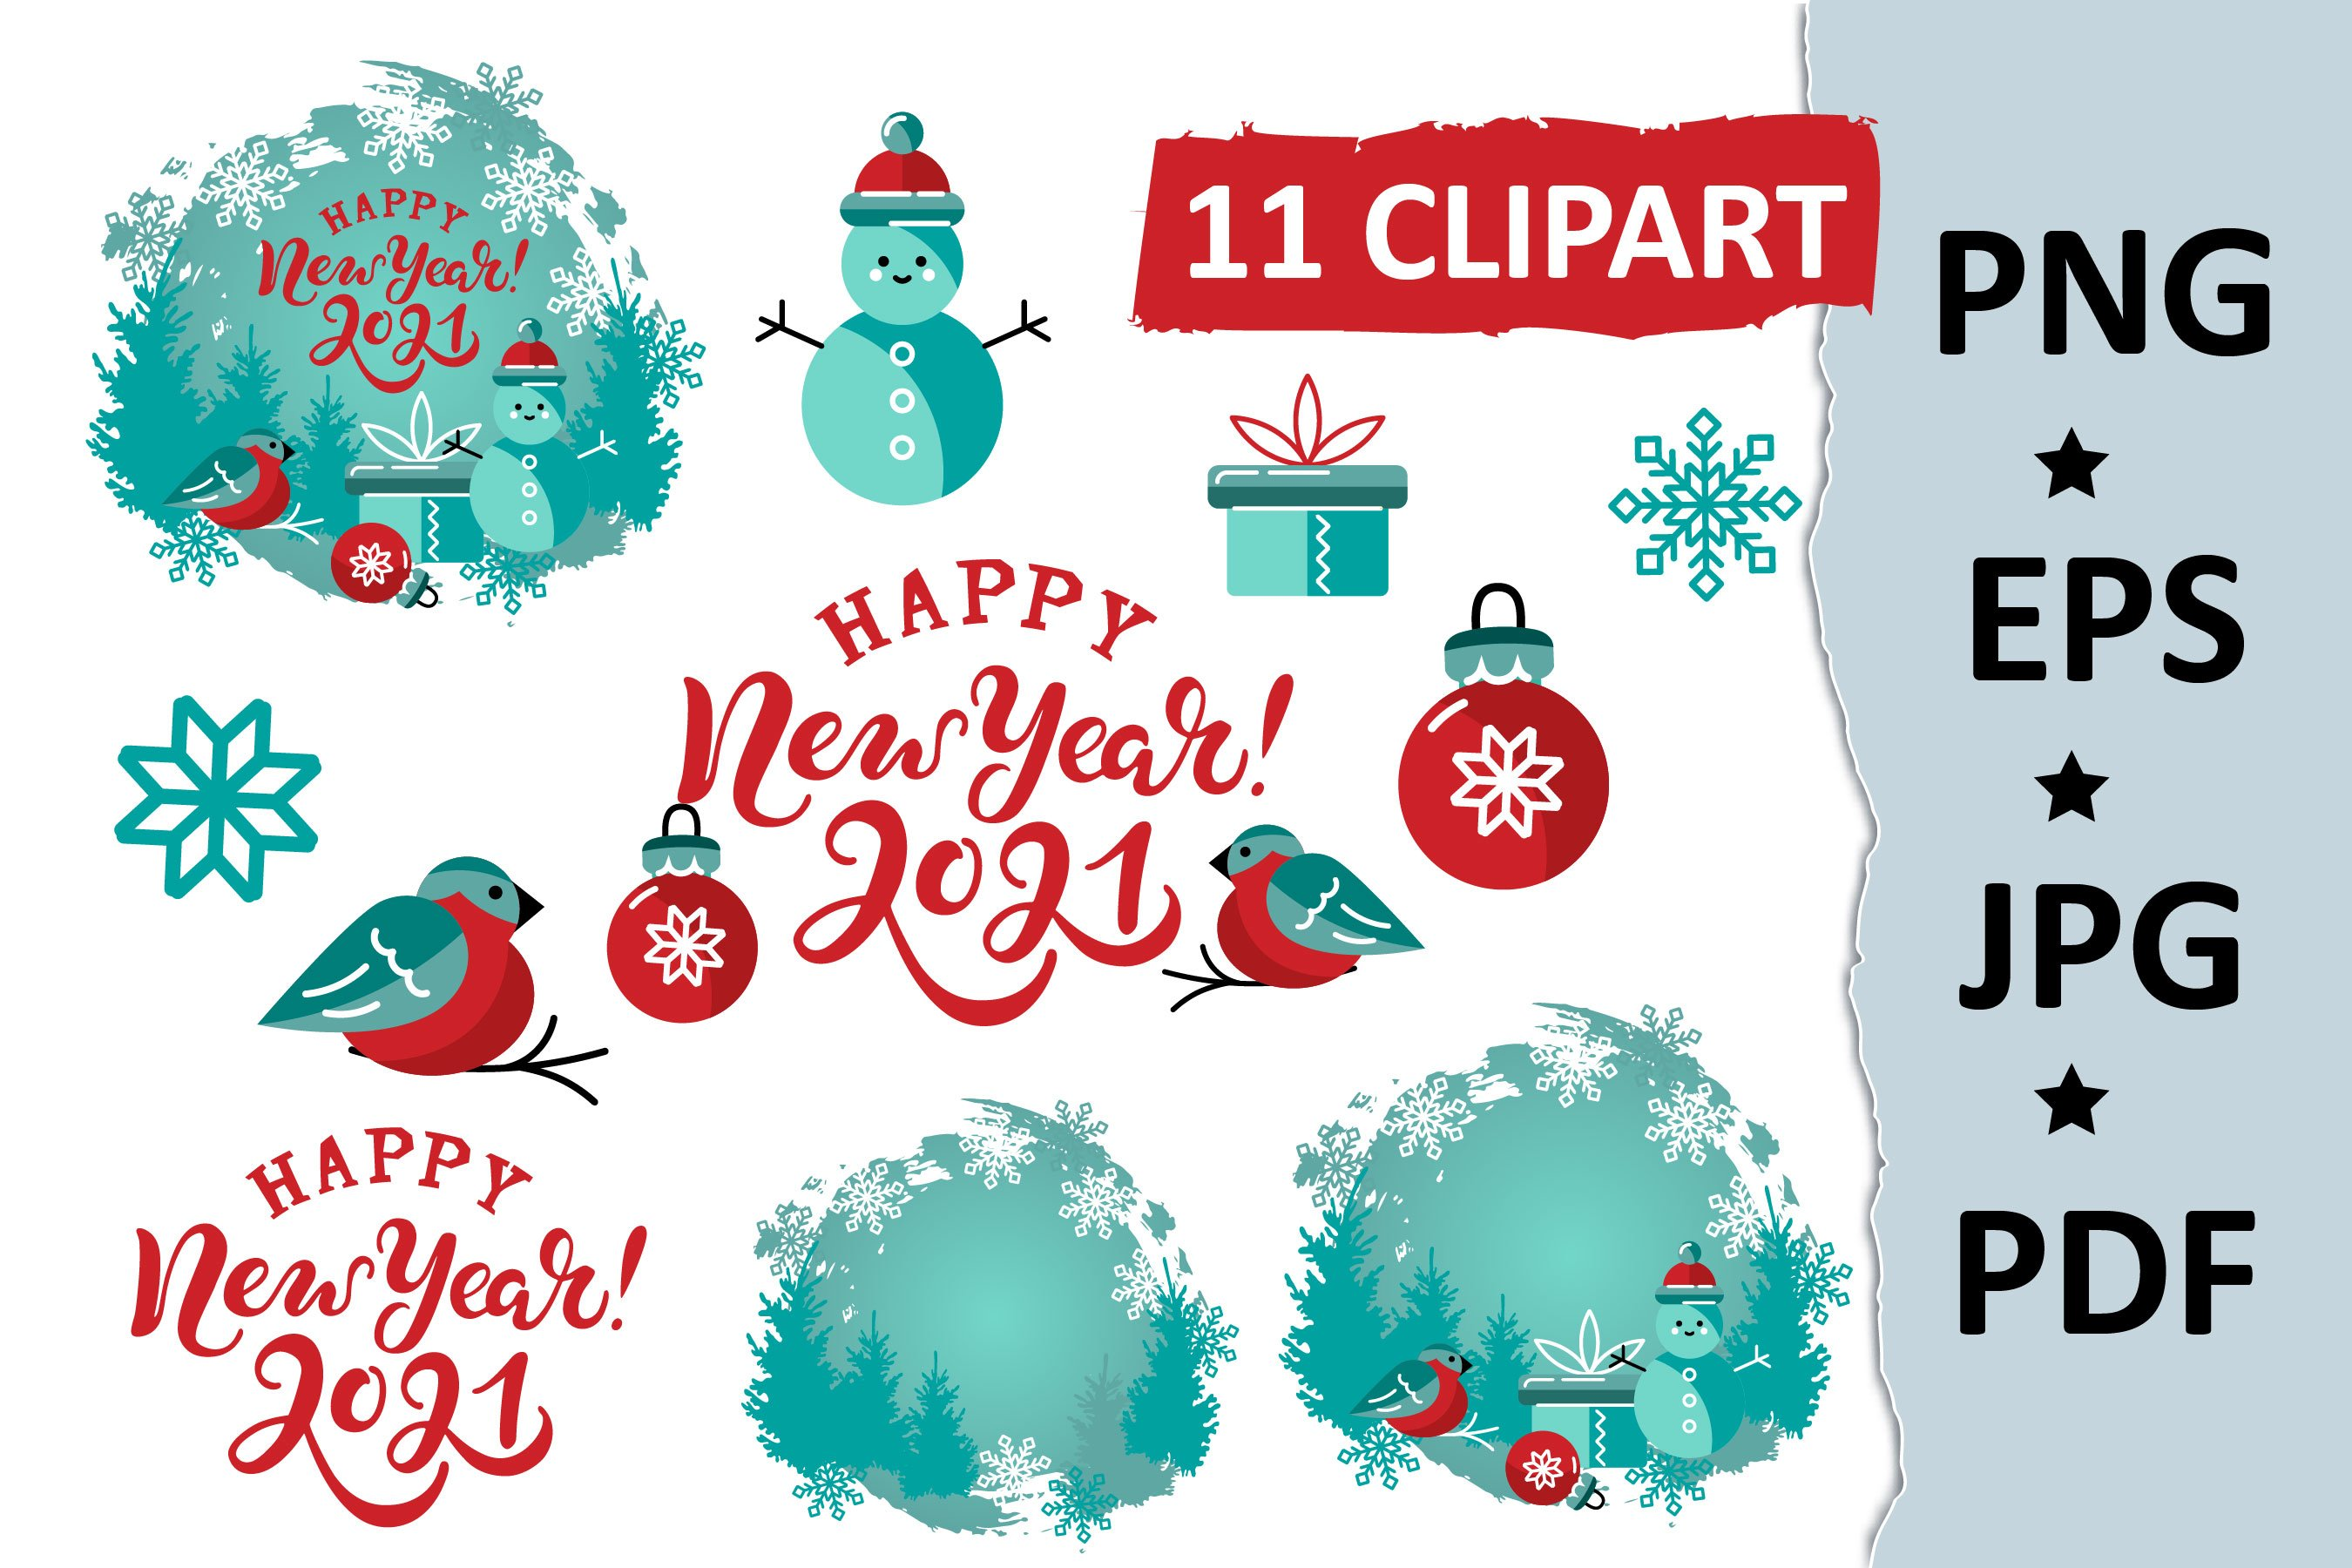 2021 Happy New Year Clipart And Hand Lettered Sign Printable 980322 Elements Design Bundles